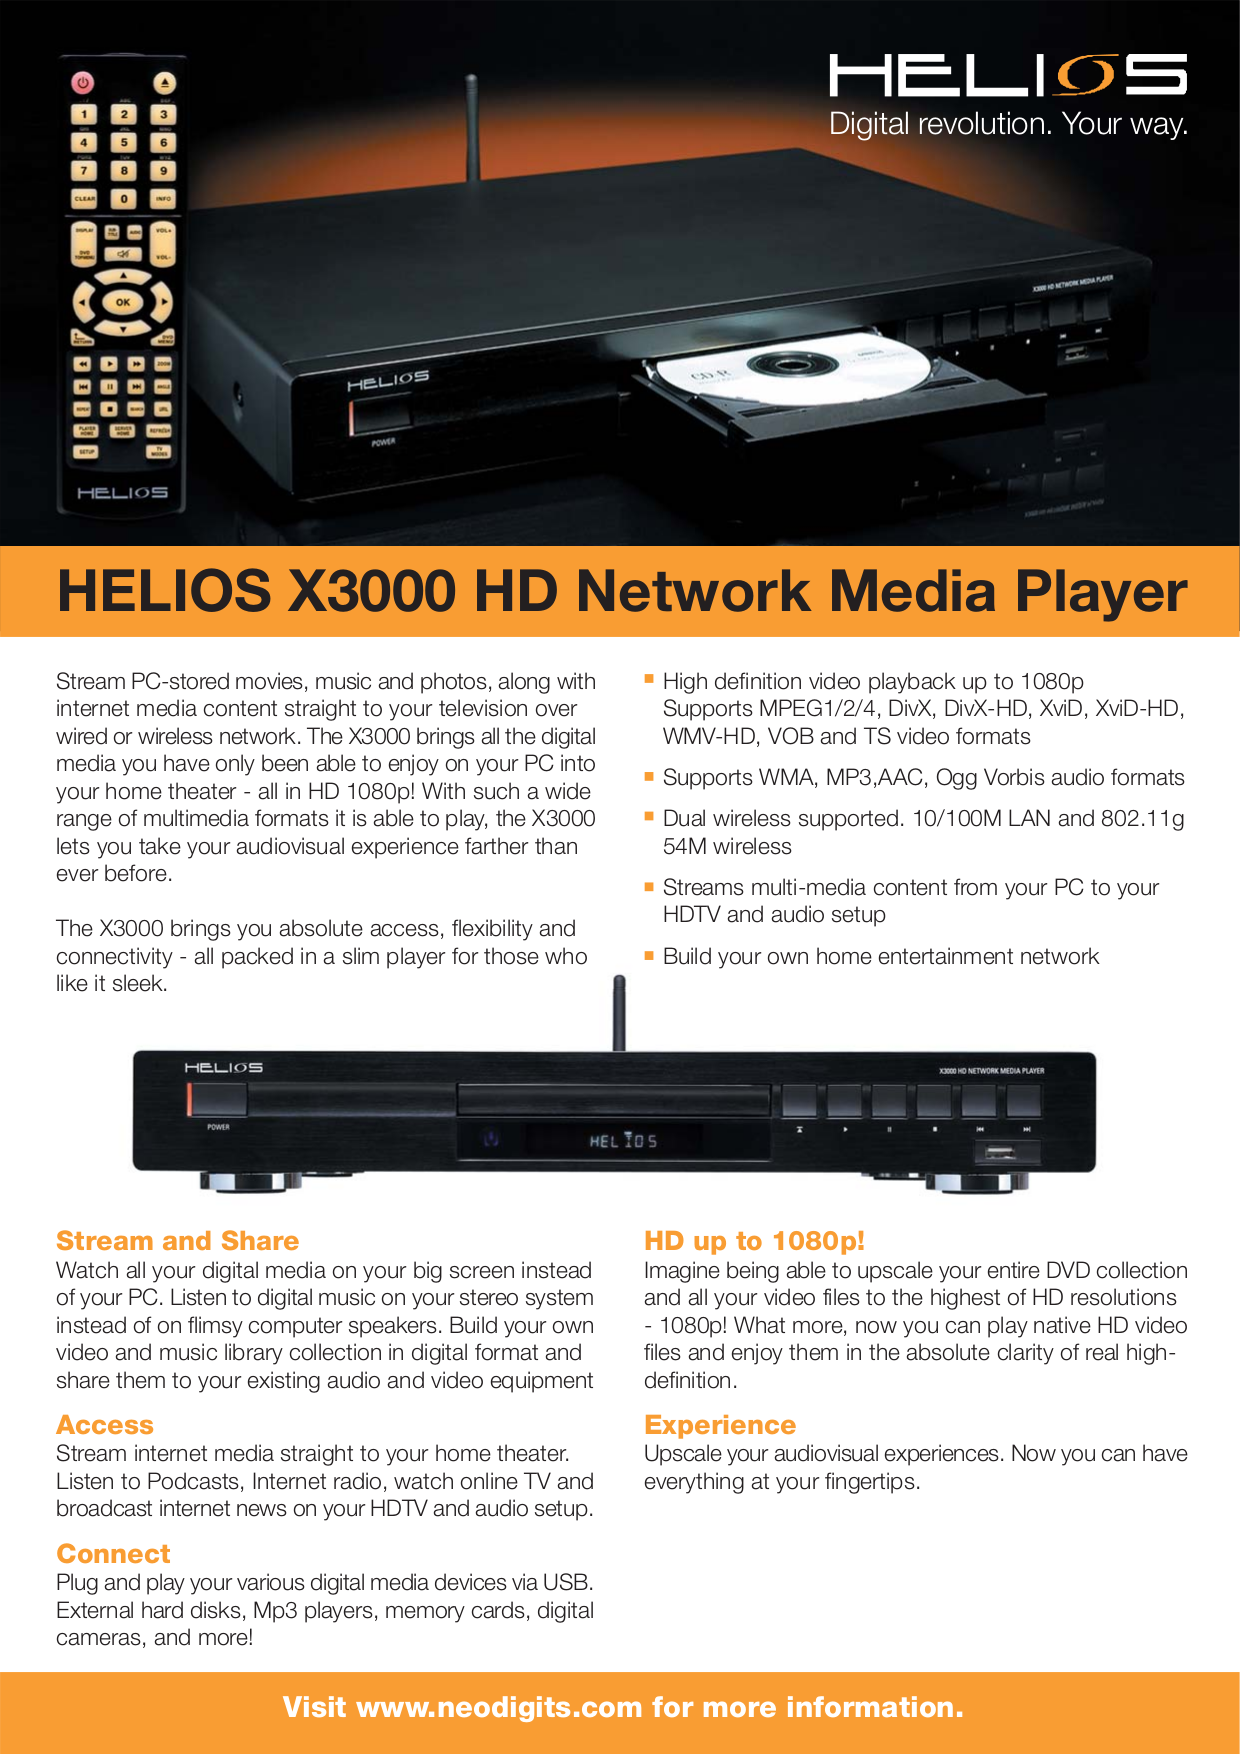 pdf for Neodigits DVD Players HELIOS X3000 manual